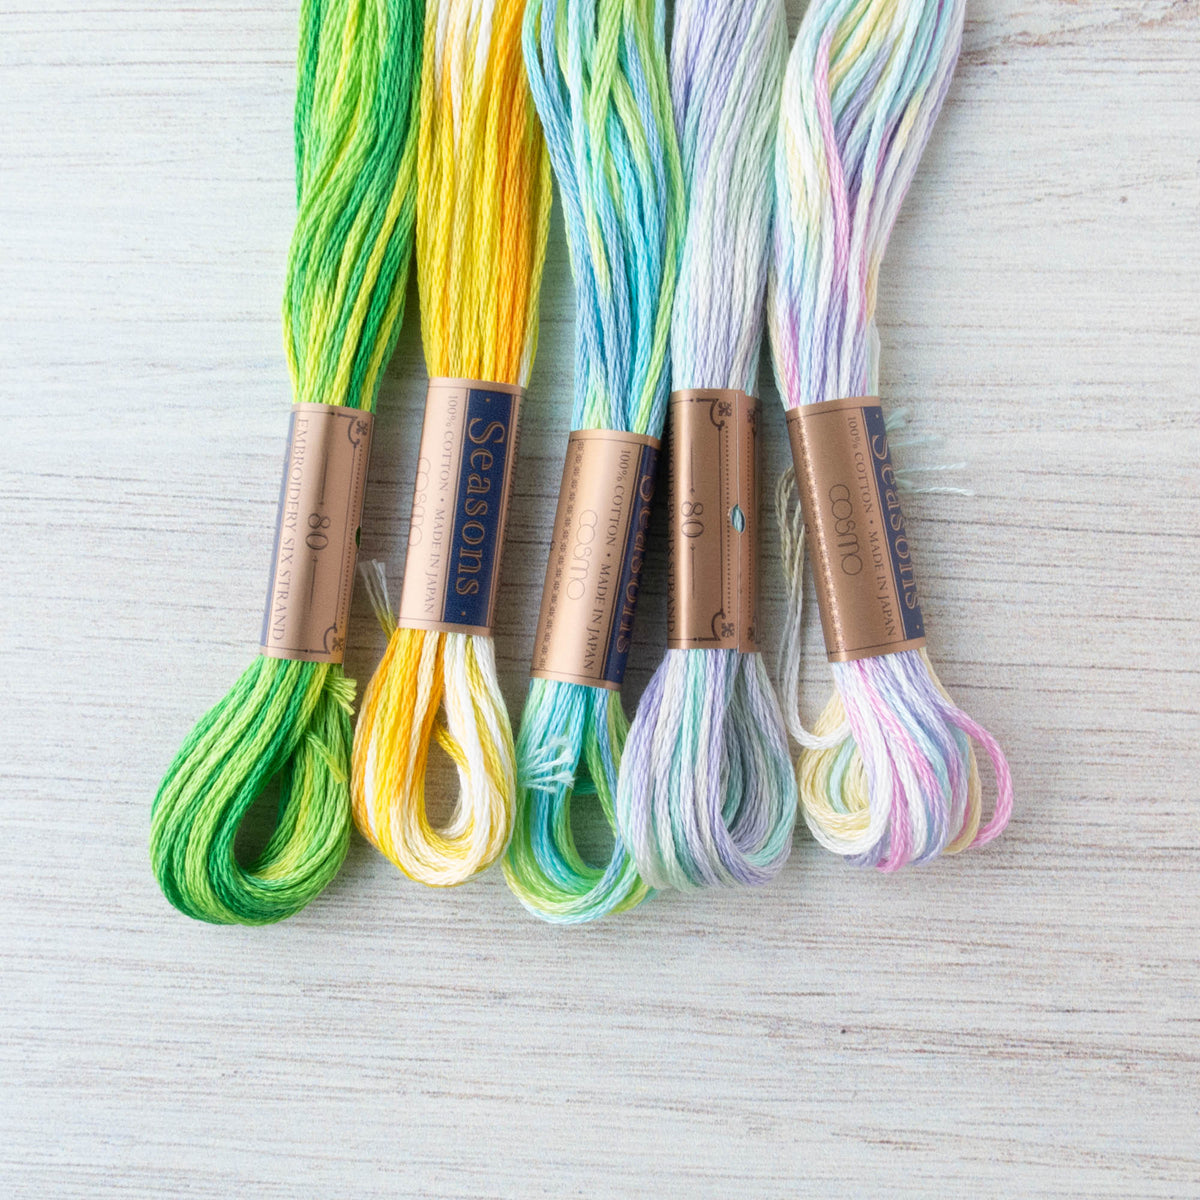 COSMO Seasons Variegated Embroidery Floss - 9001, 9002, 9003, 9004, 9005 Floss - Snuggly Monkey